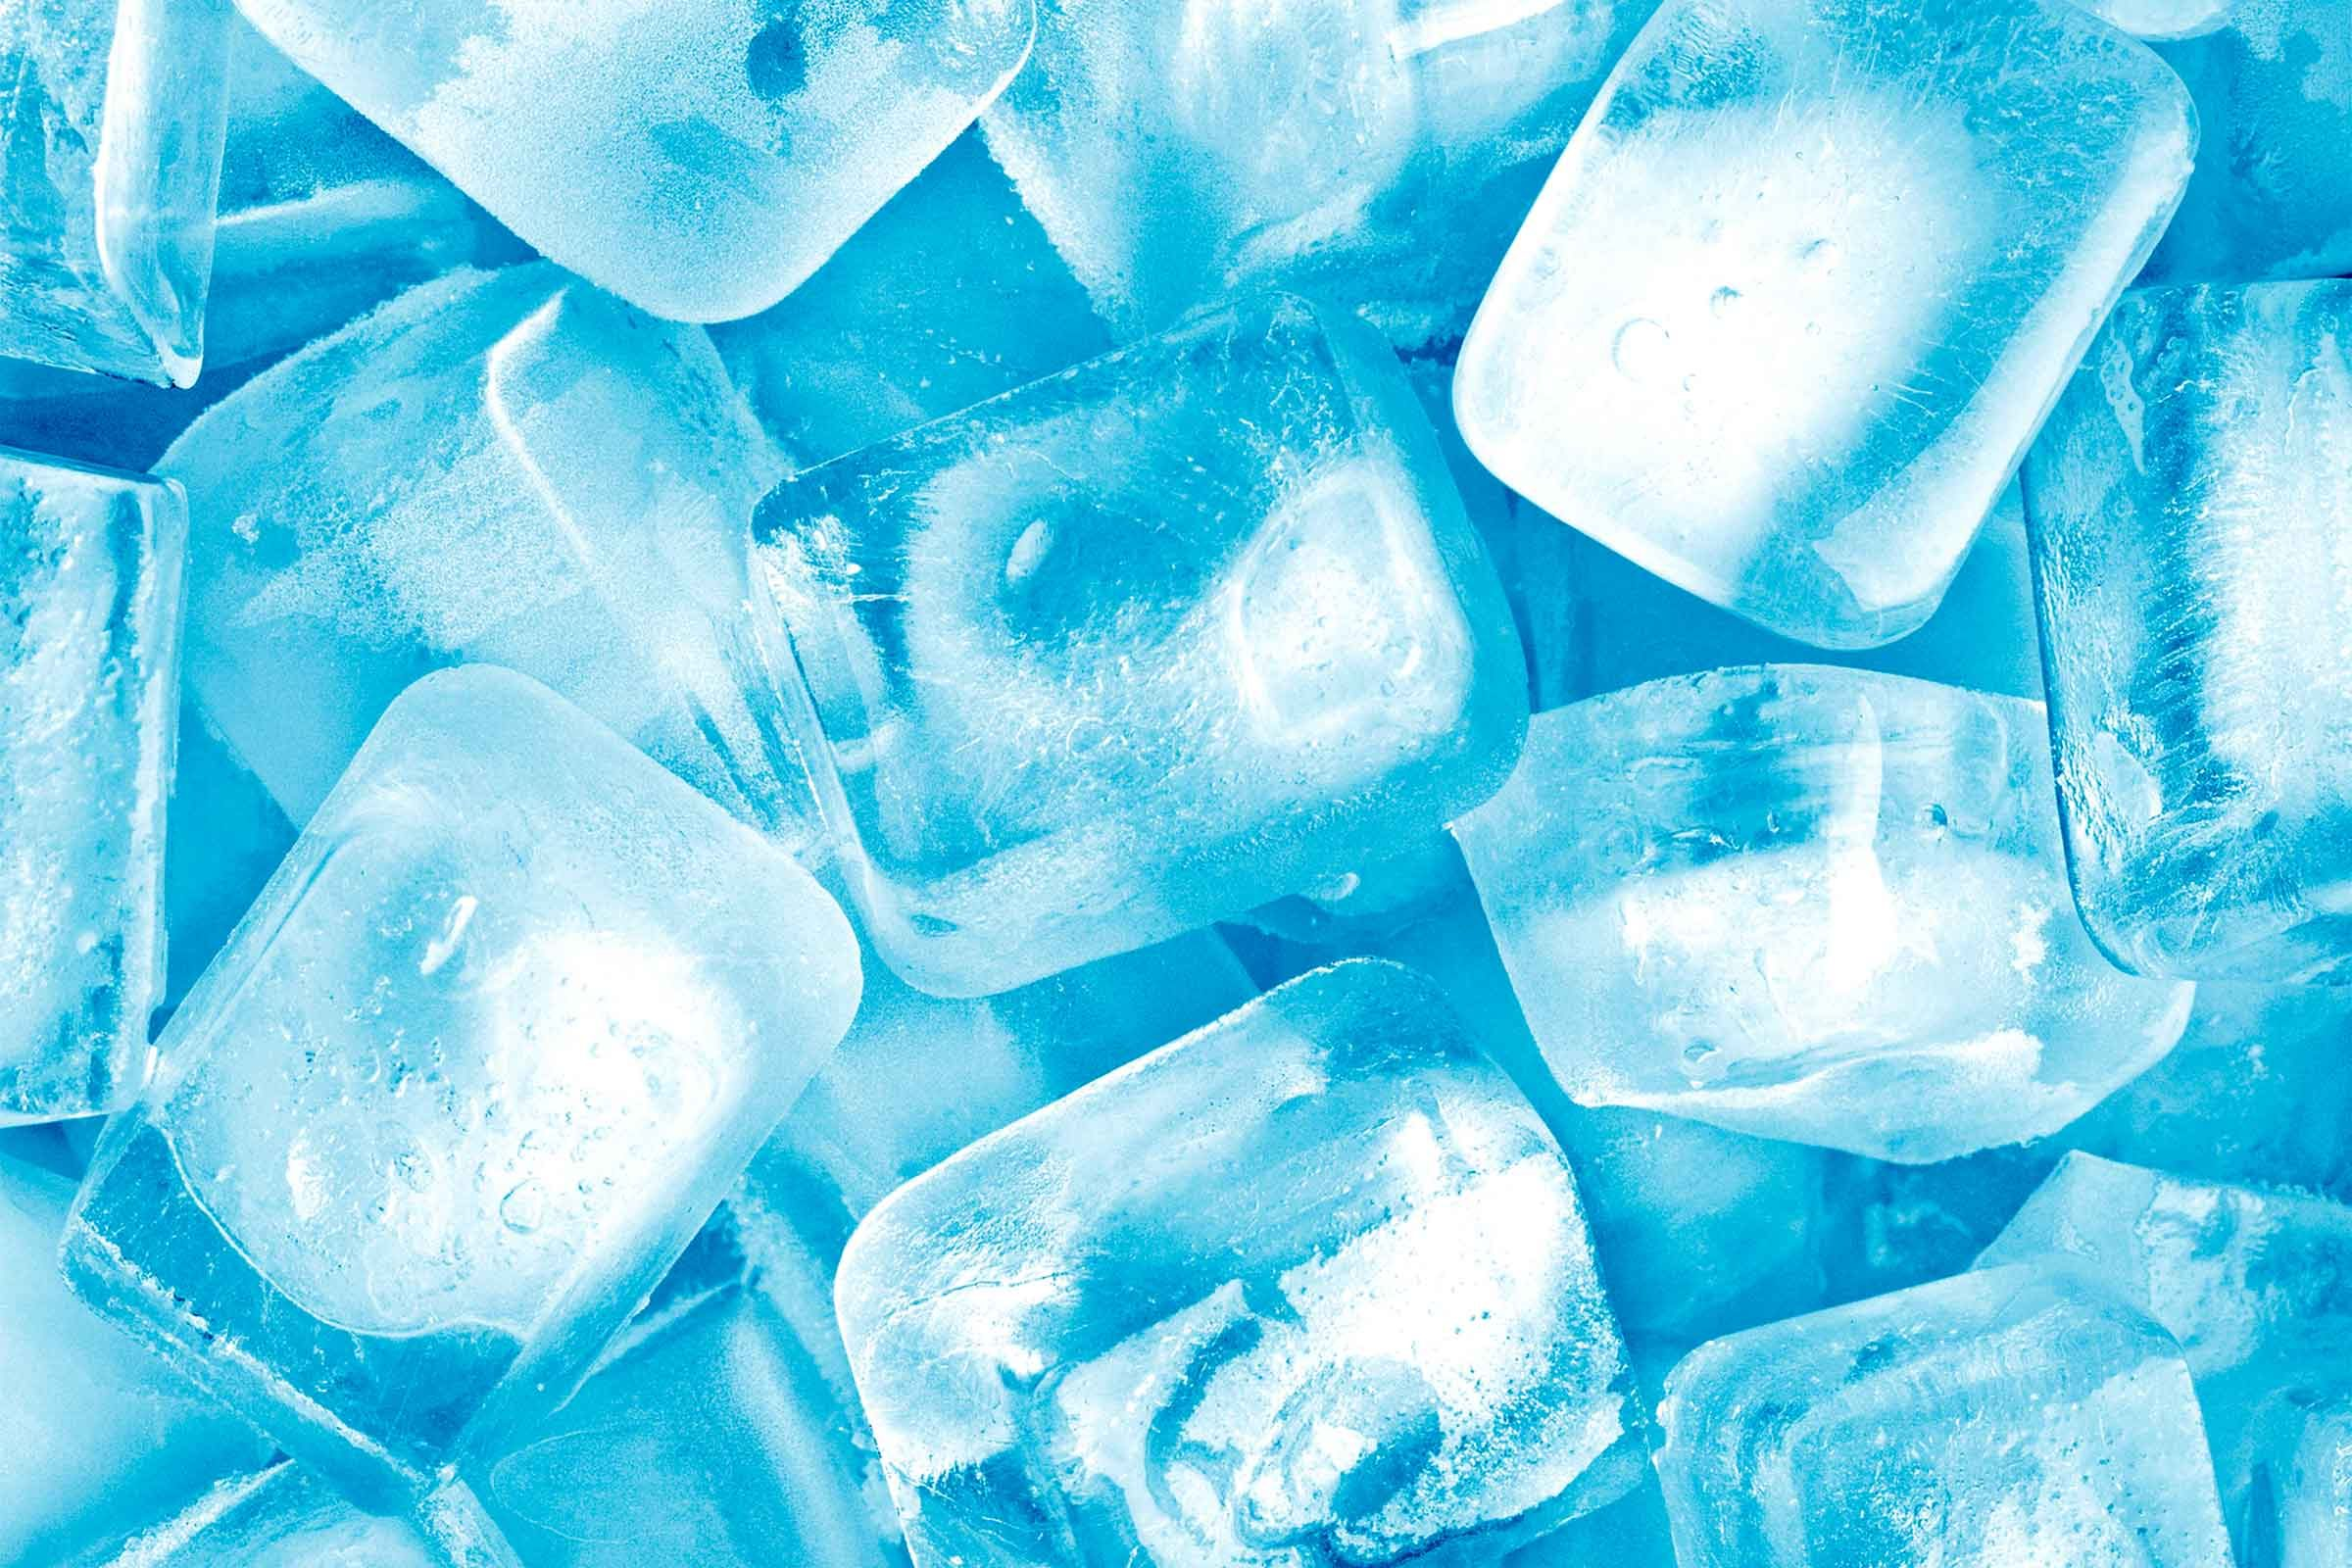 Close-up of ice cubes